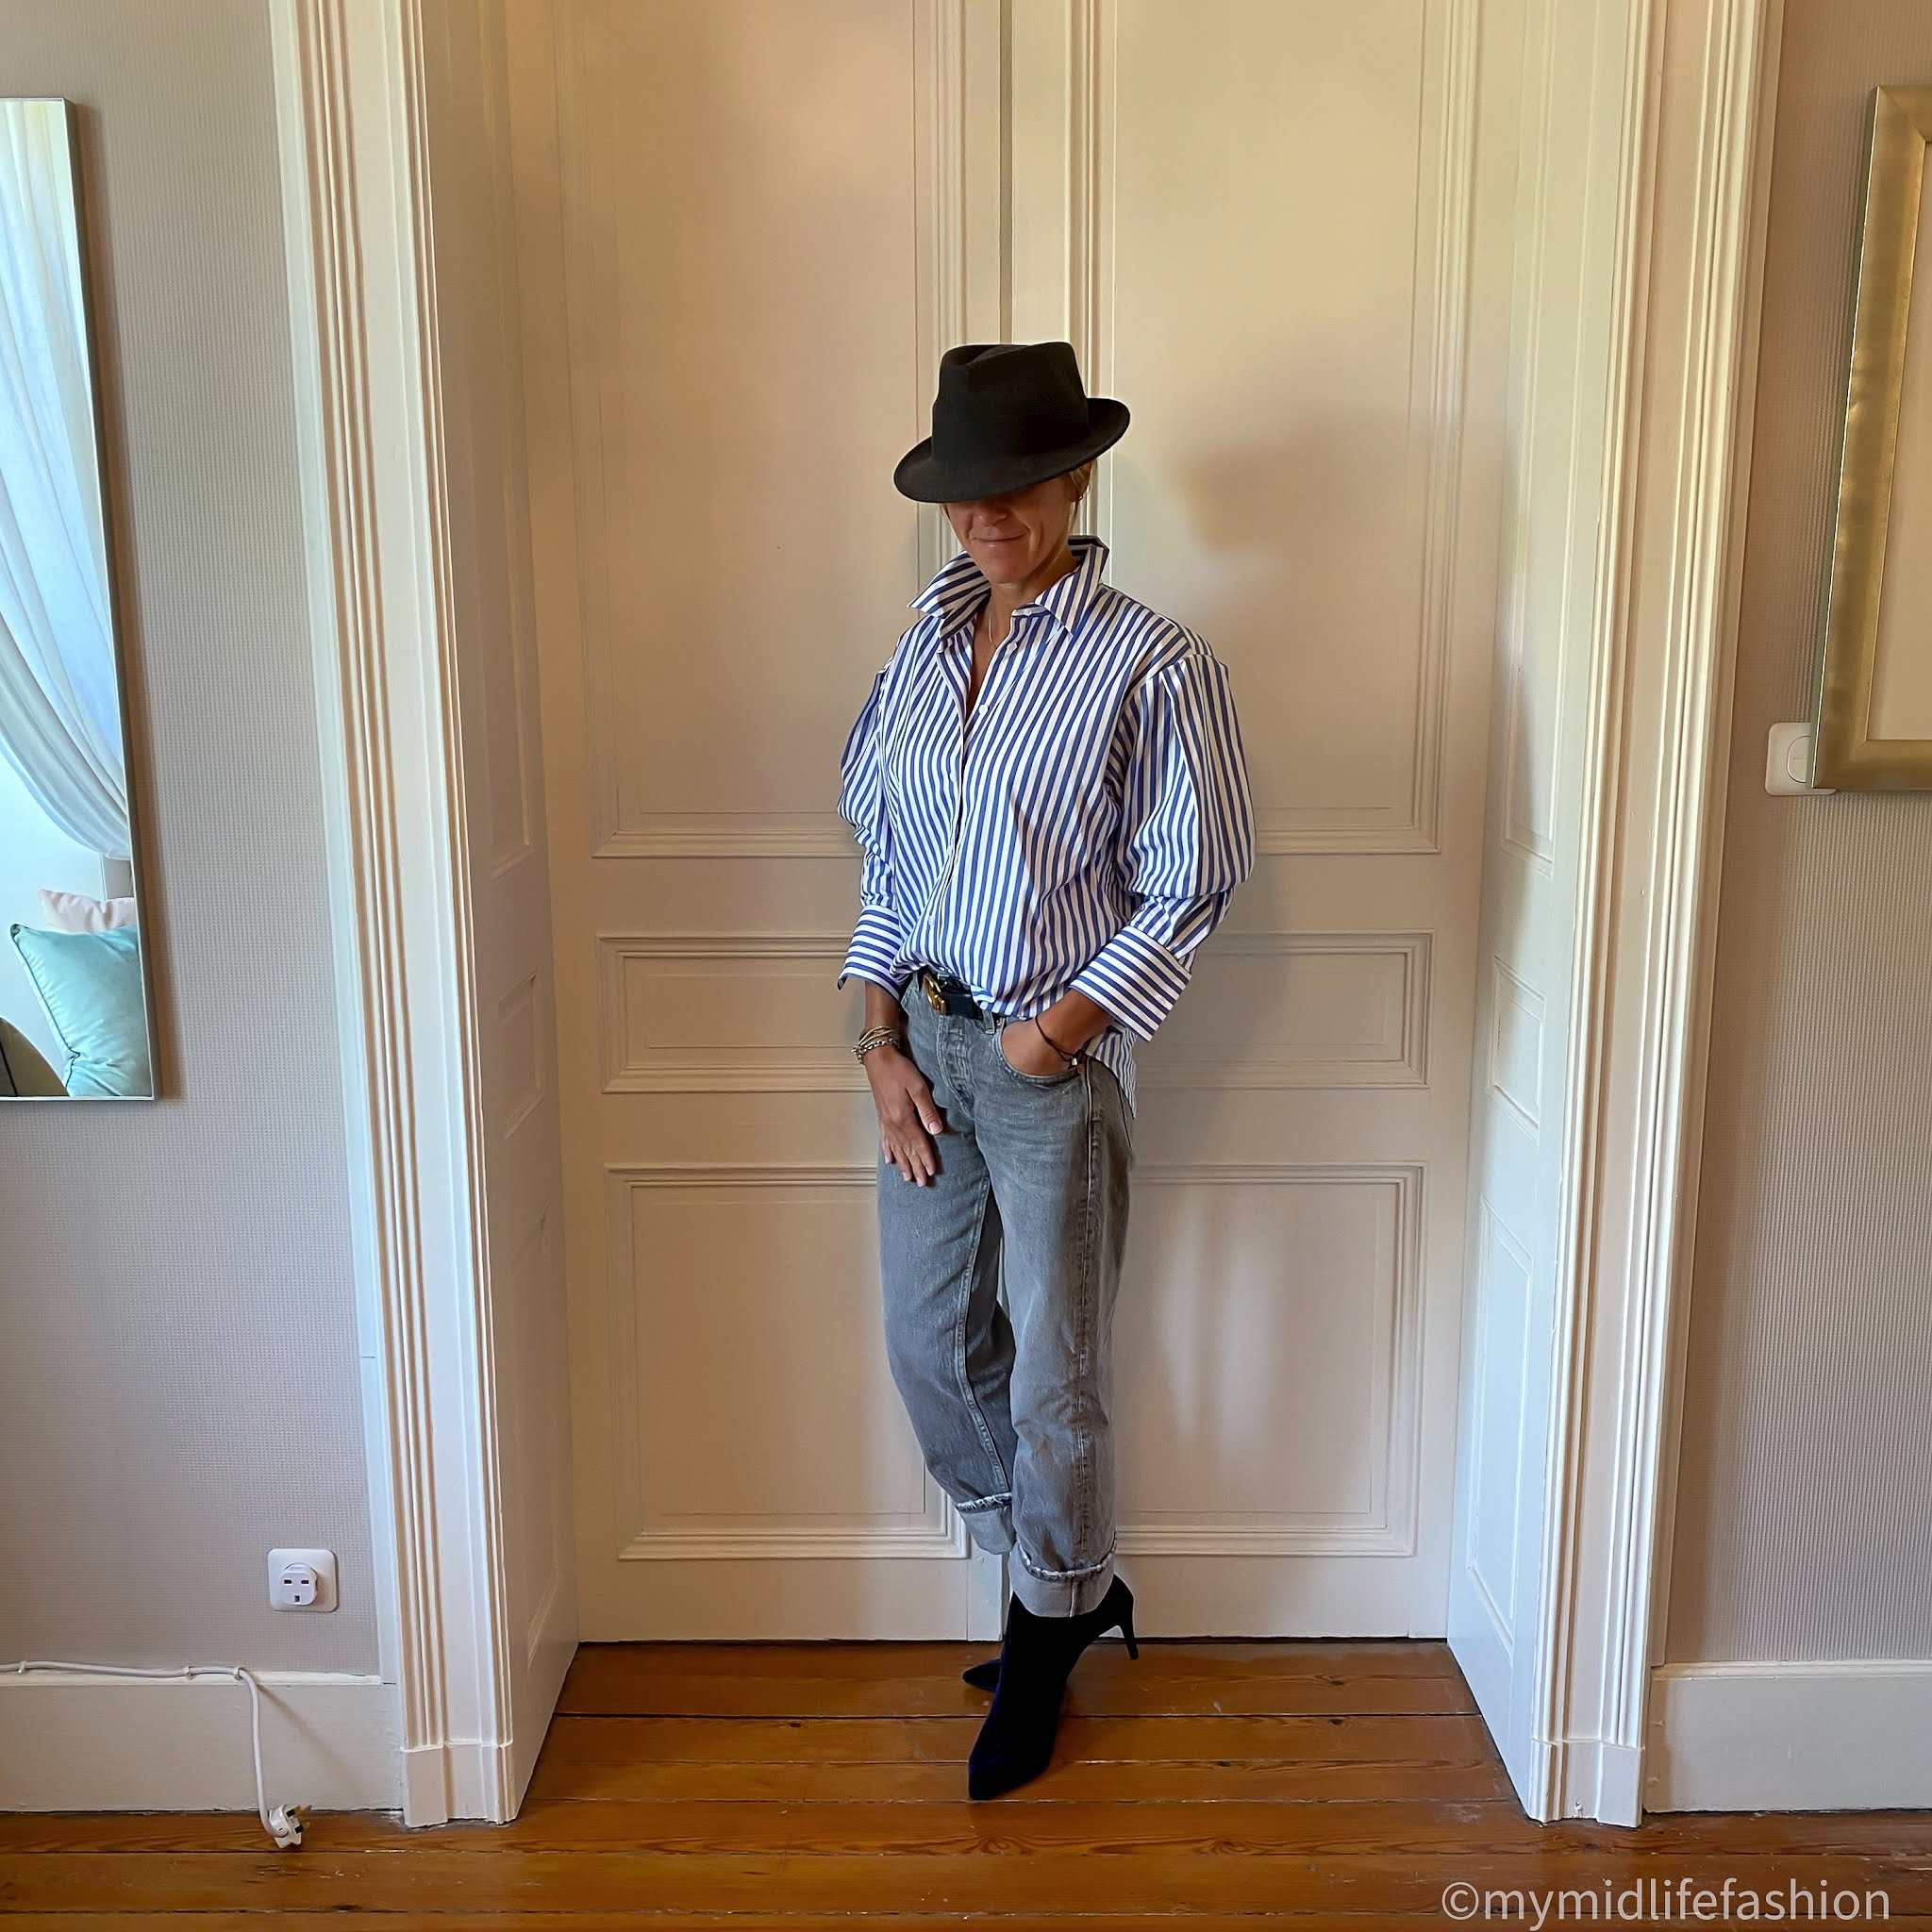 my midlife fashion, zara low rise straight leg jeans trf, marks and Spencer velvet stiletto heel ankle boots, felt fedora hat, and other stories oversized stripe shirt